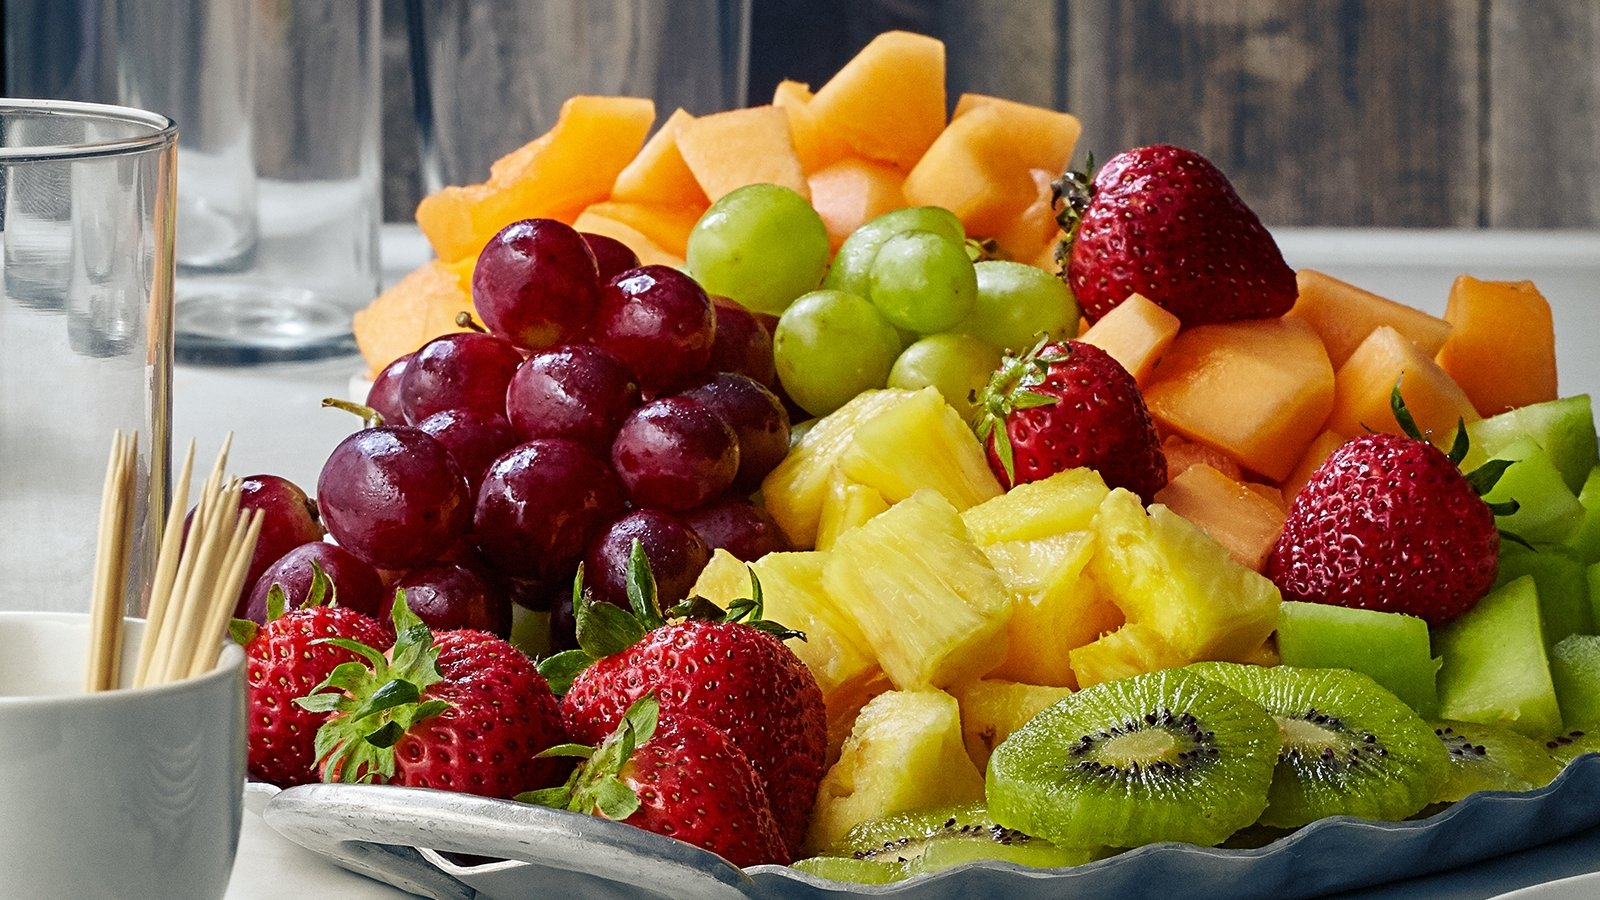 10 Attractive Fruit Tray Ideas For Parties fresh fruit party platters in store pickup the fresh market 2021